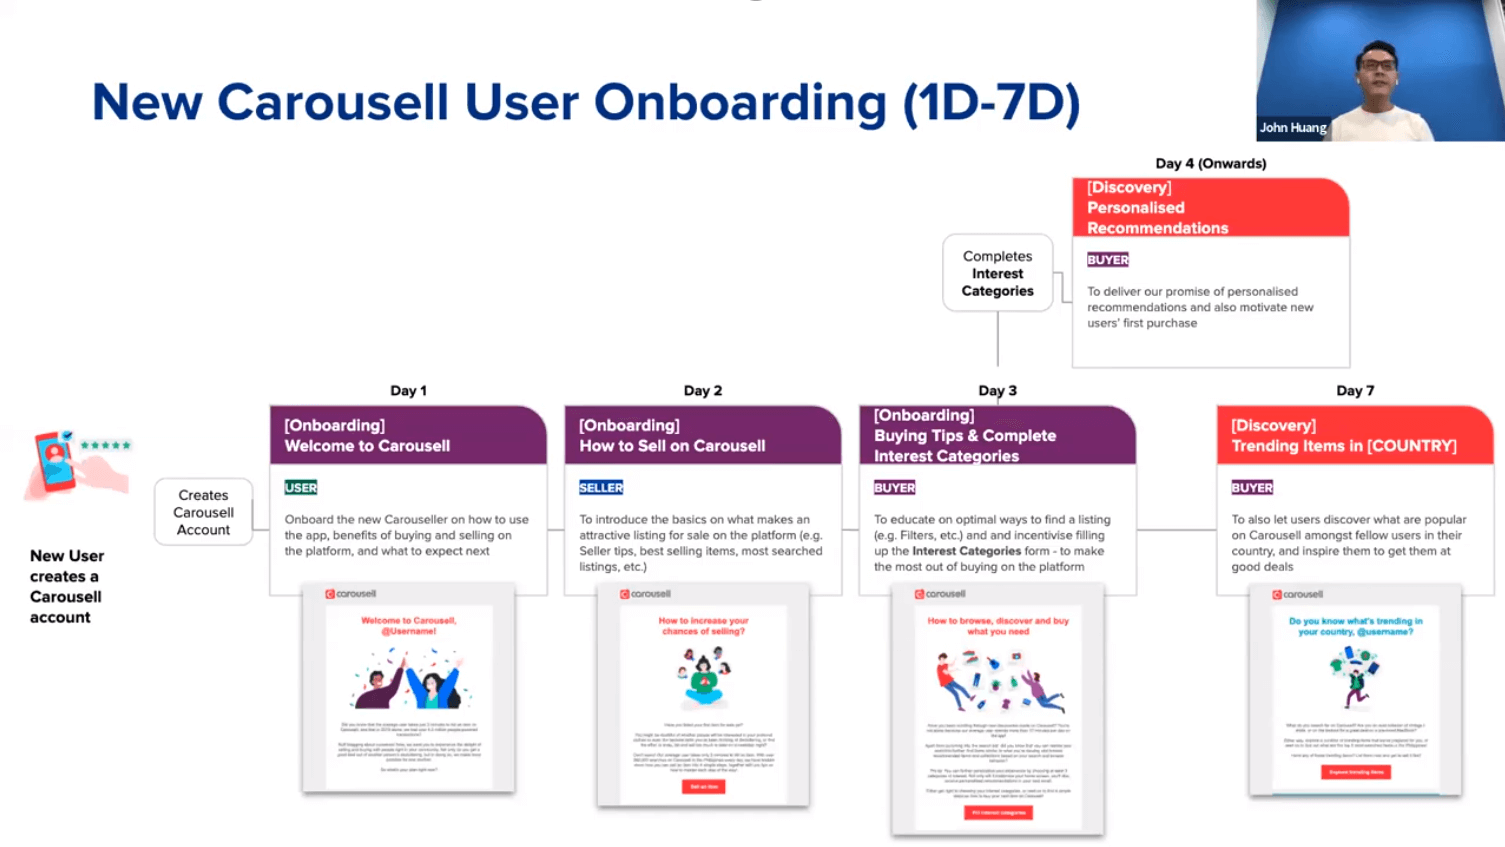 The 1st week of user onboarding at Carousell